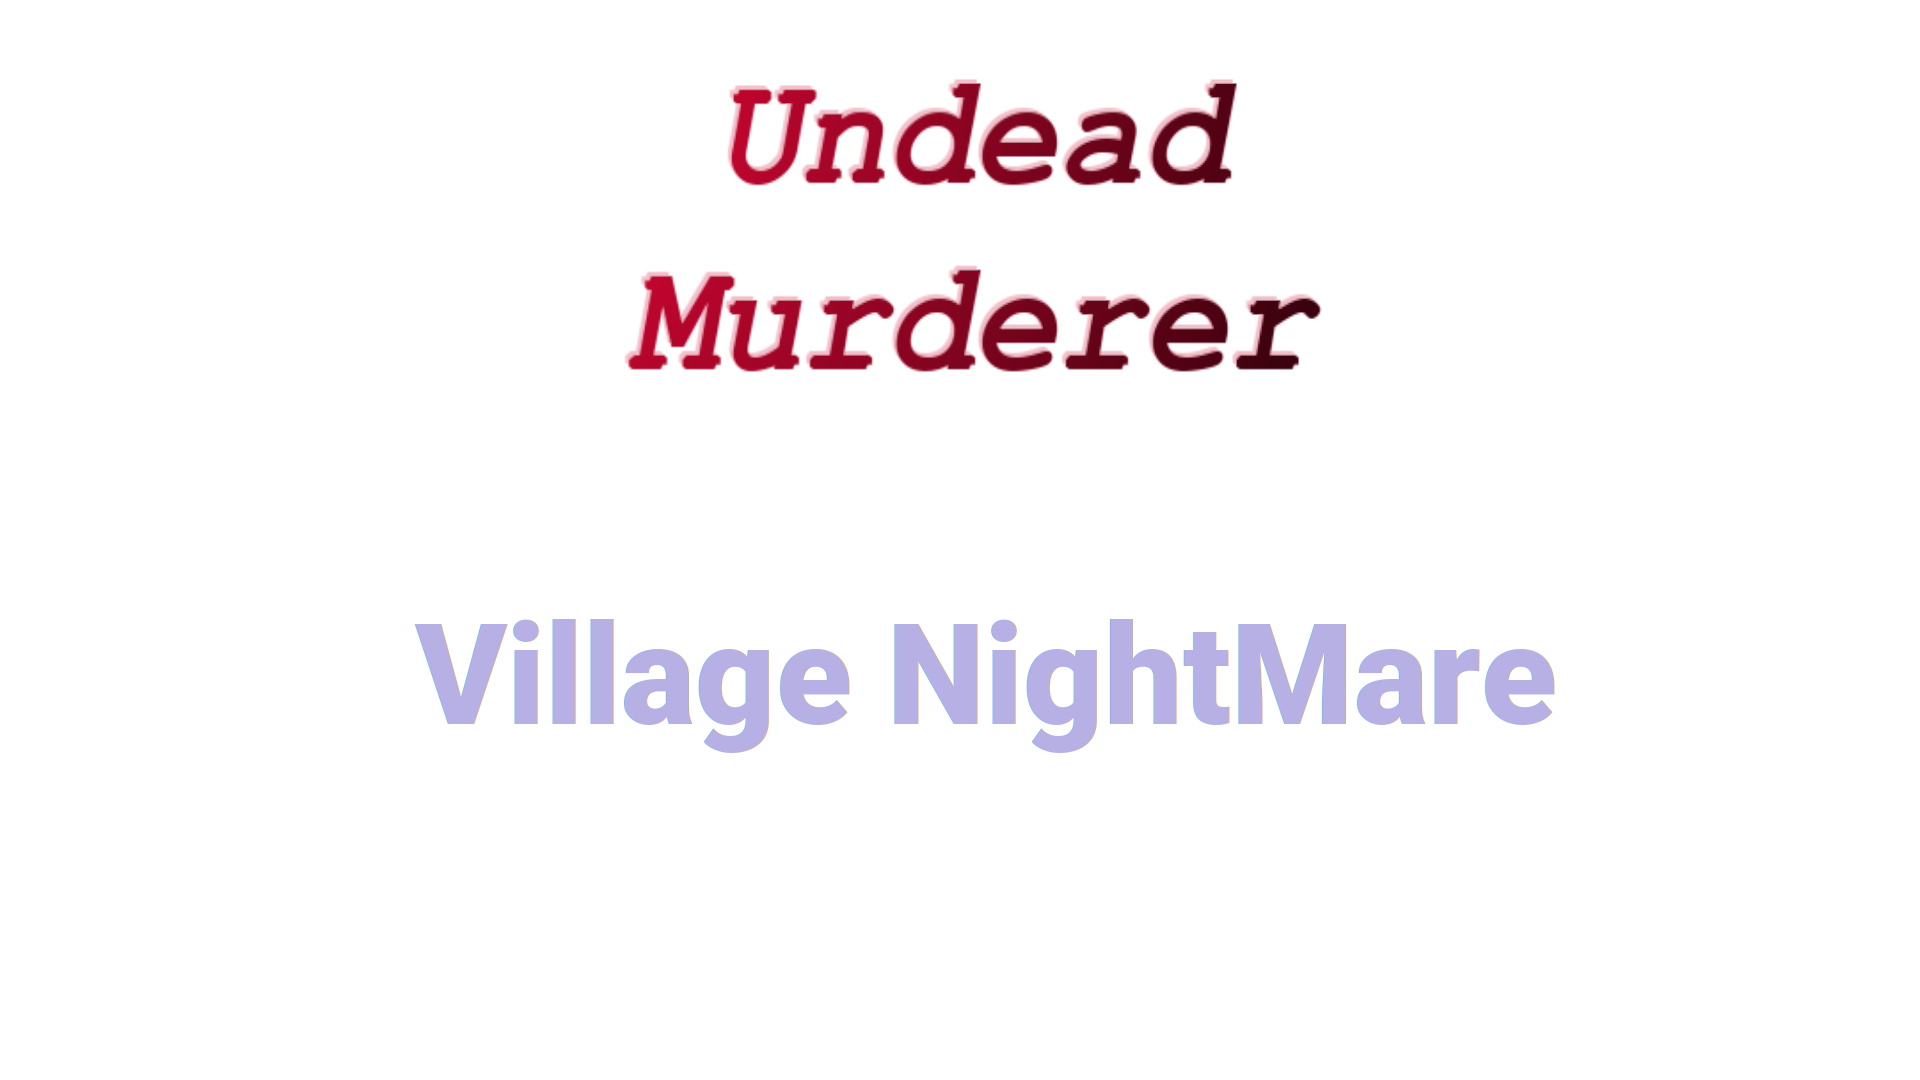 Images/Village_NightMare.png